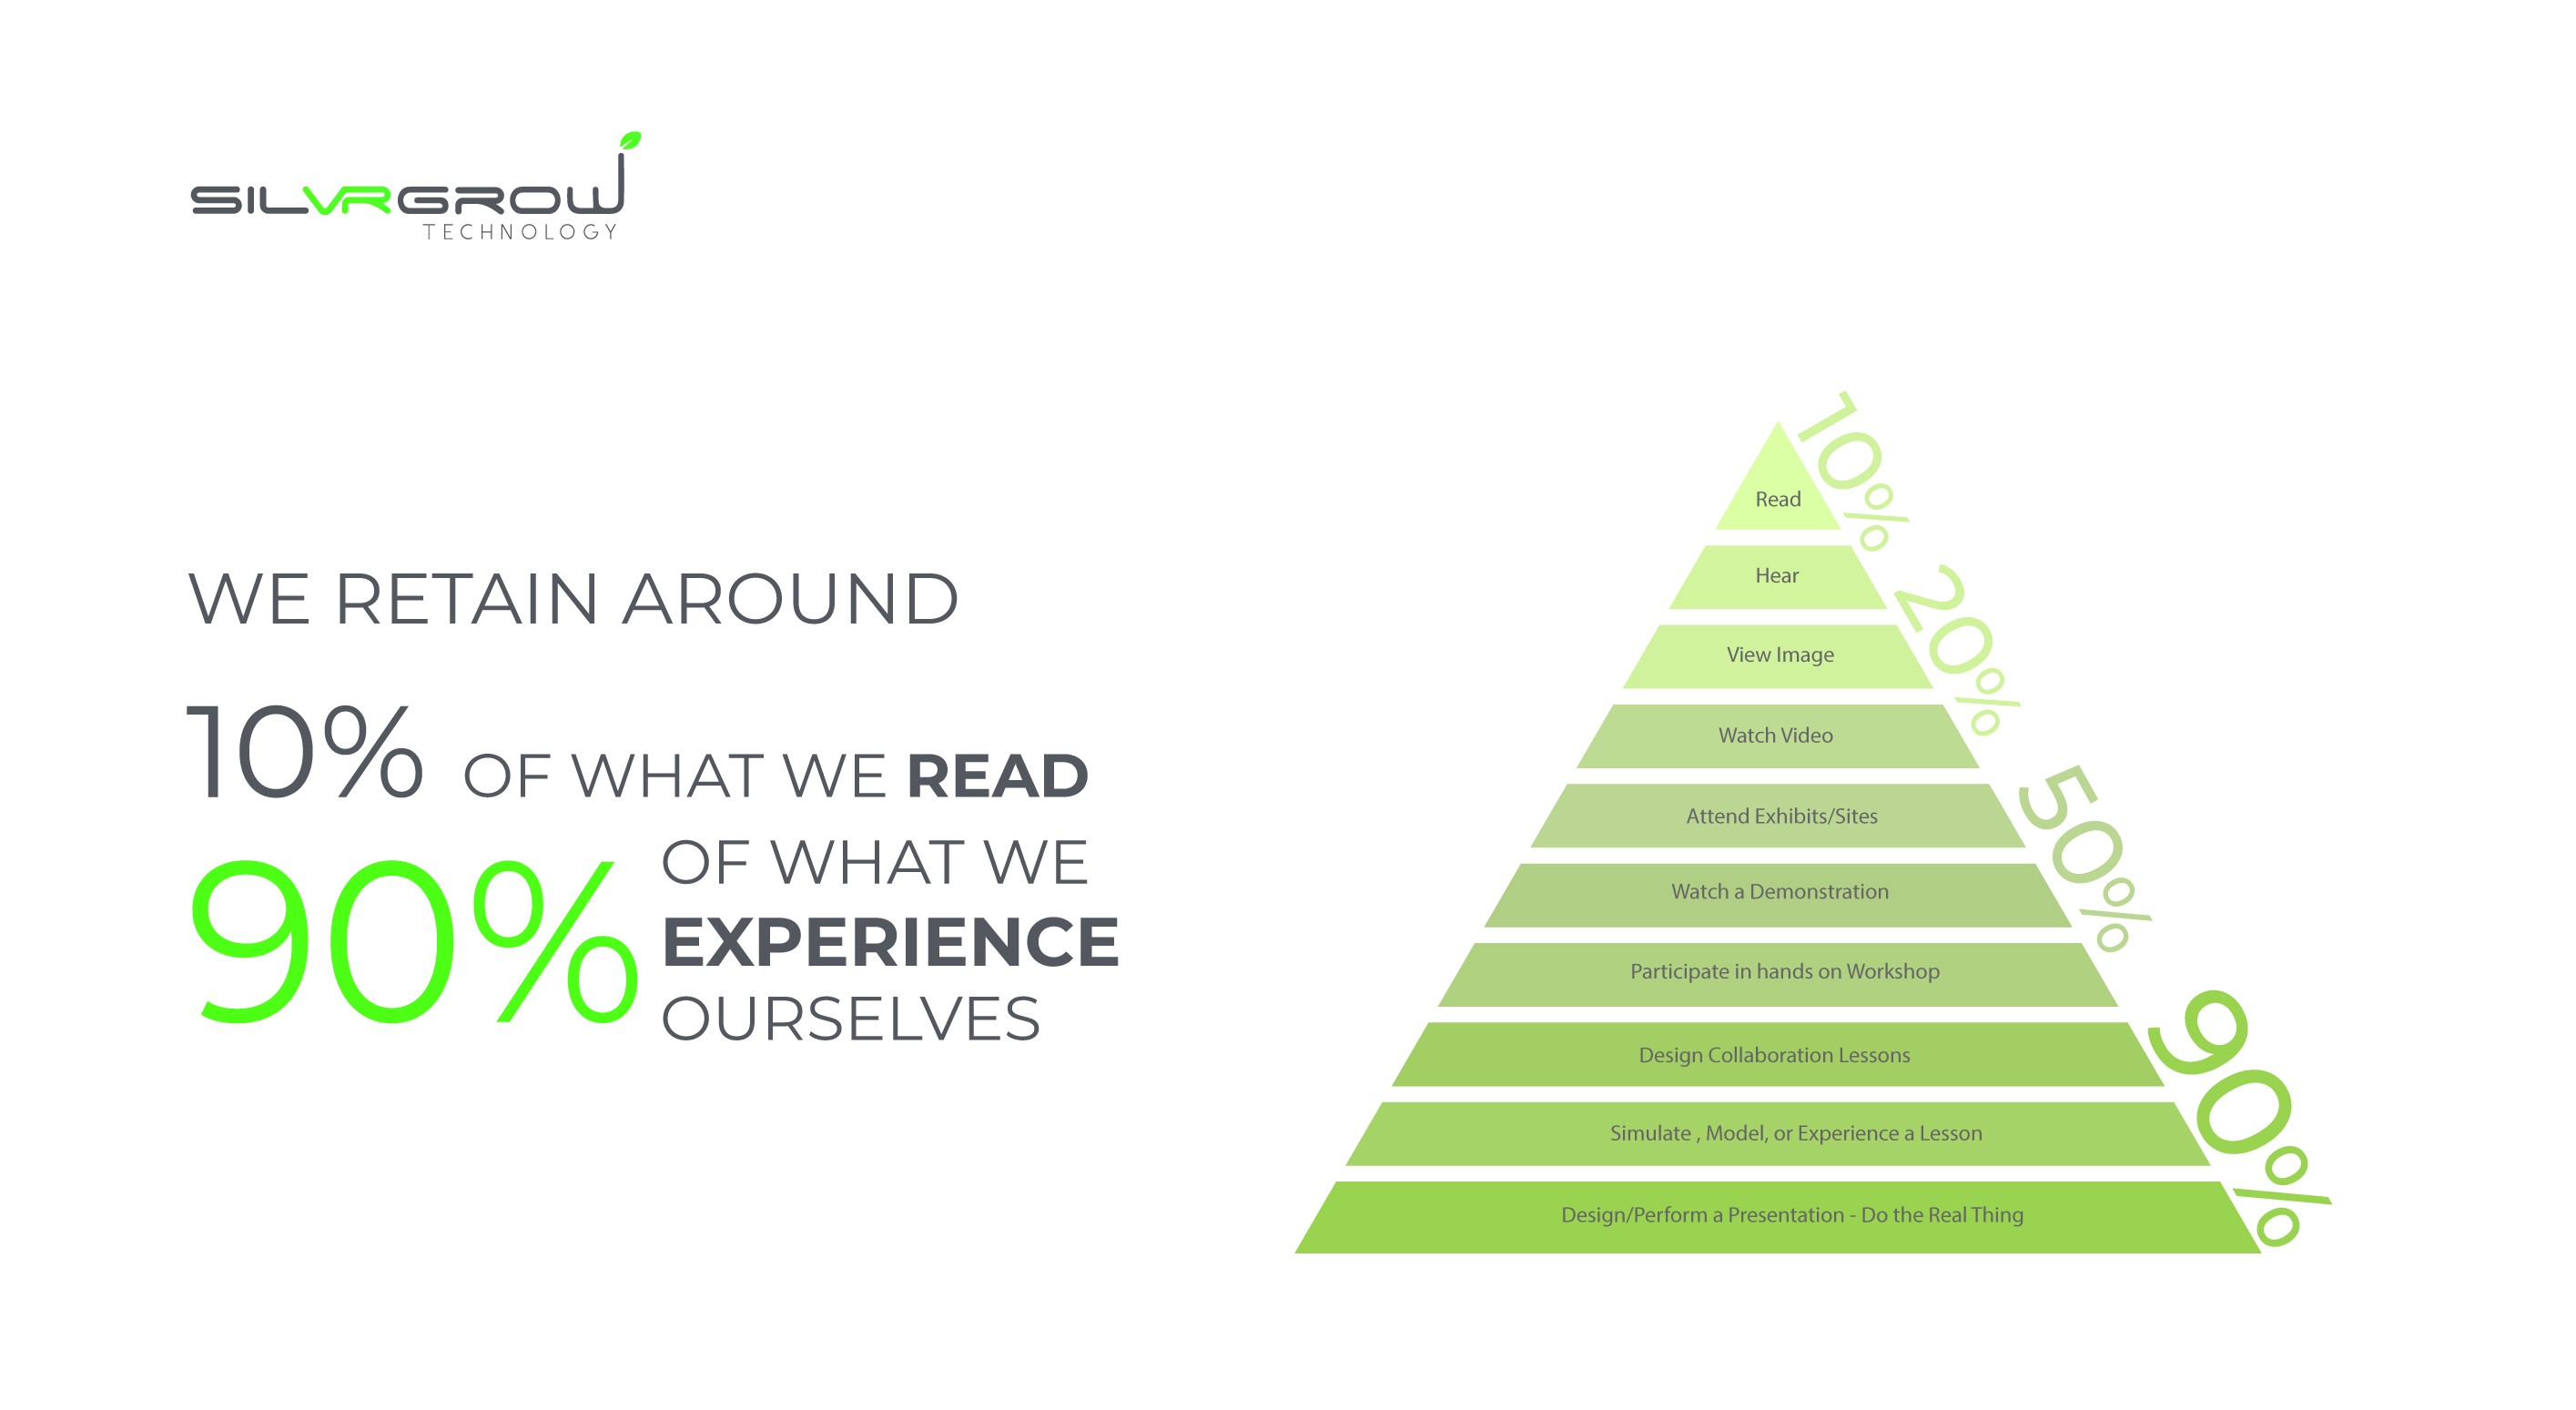 We retain around 10% of what we read, and 90% of what we experience ourselves.